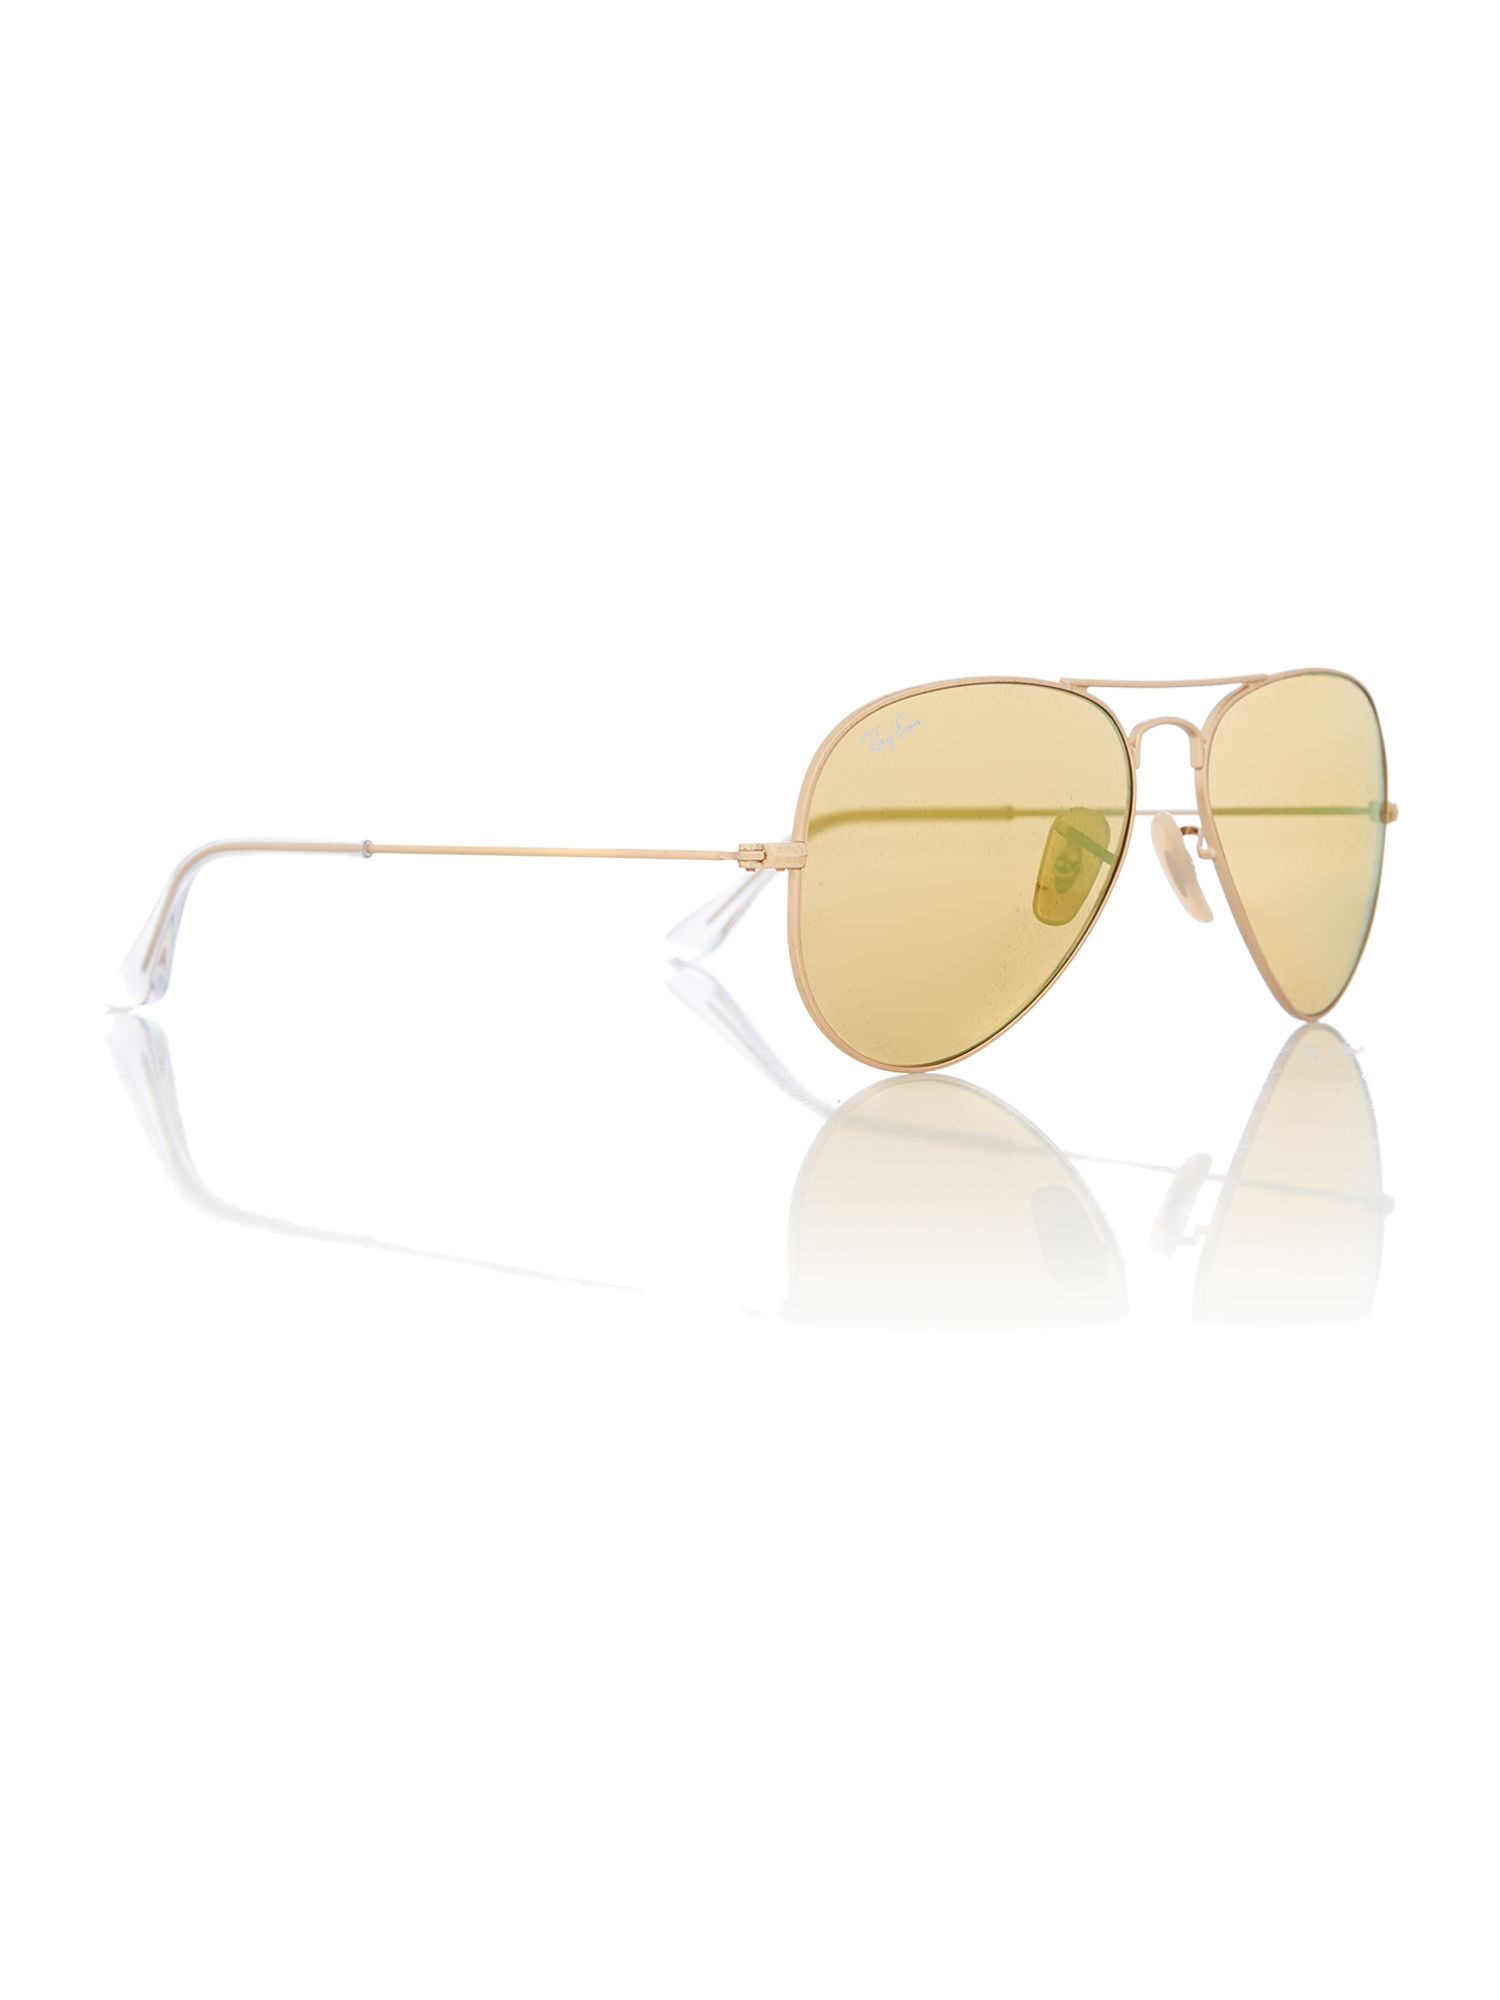 Men`s aviator sunglasses